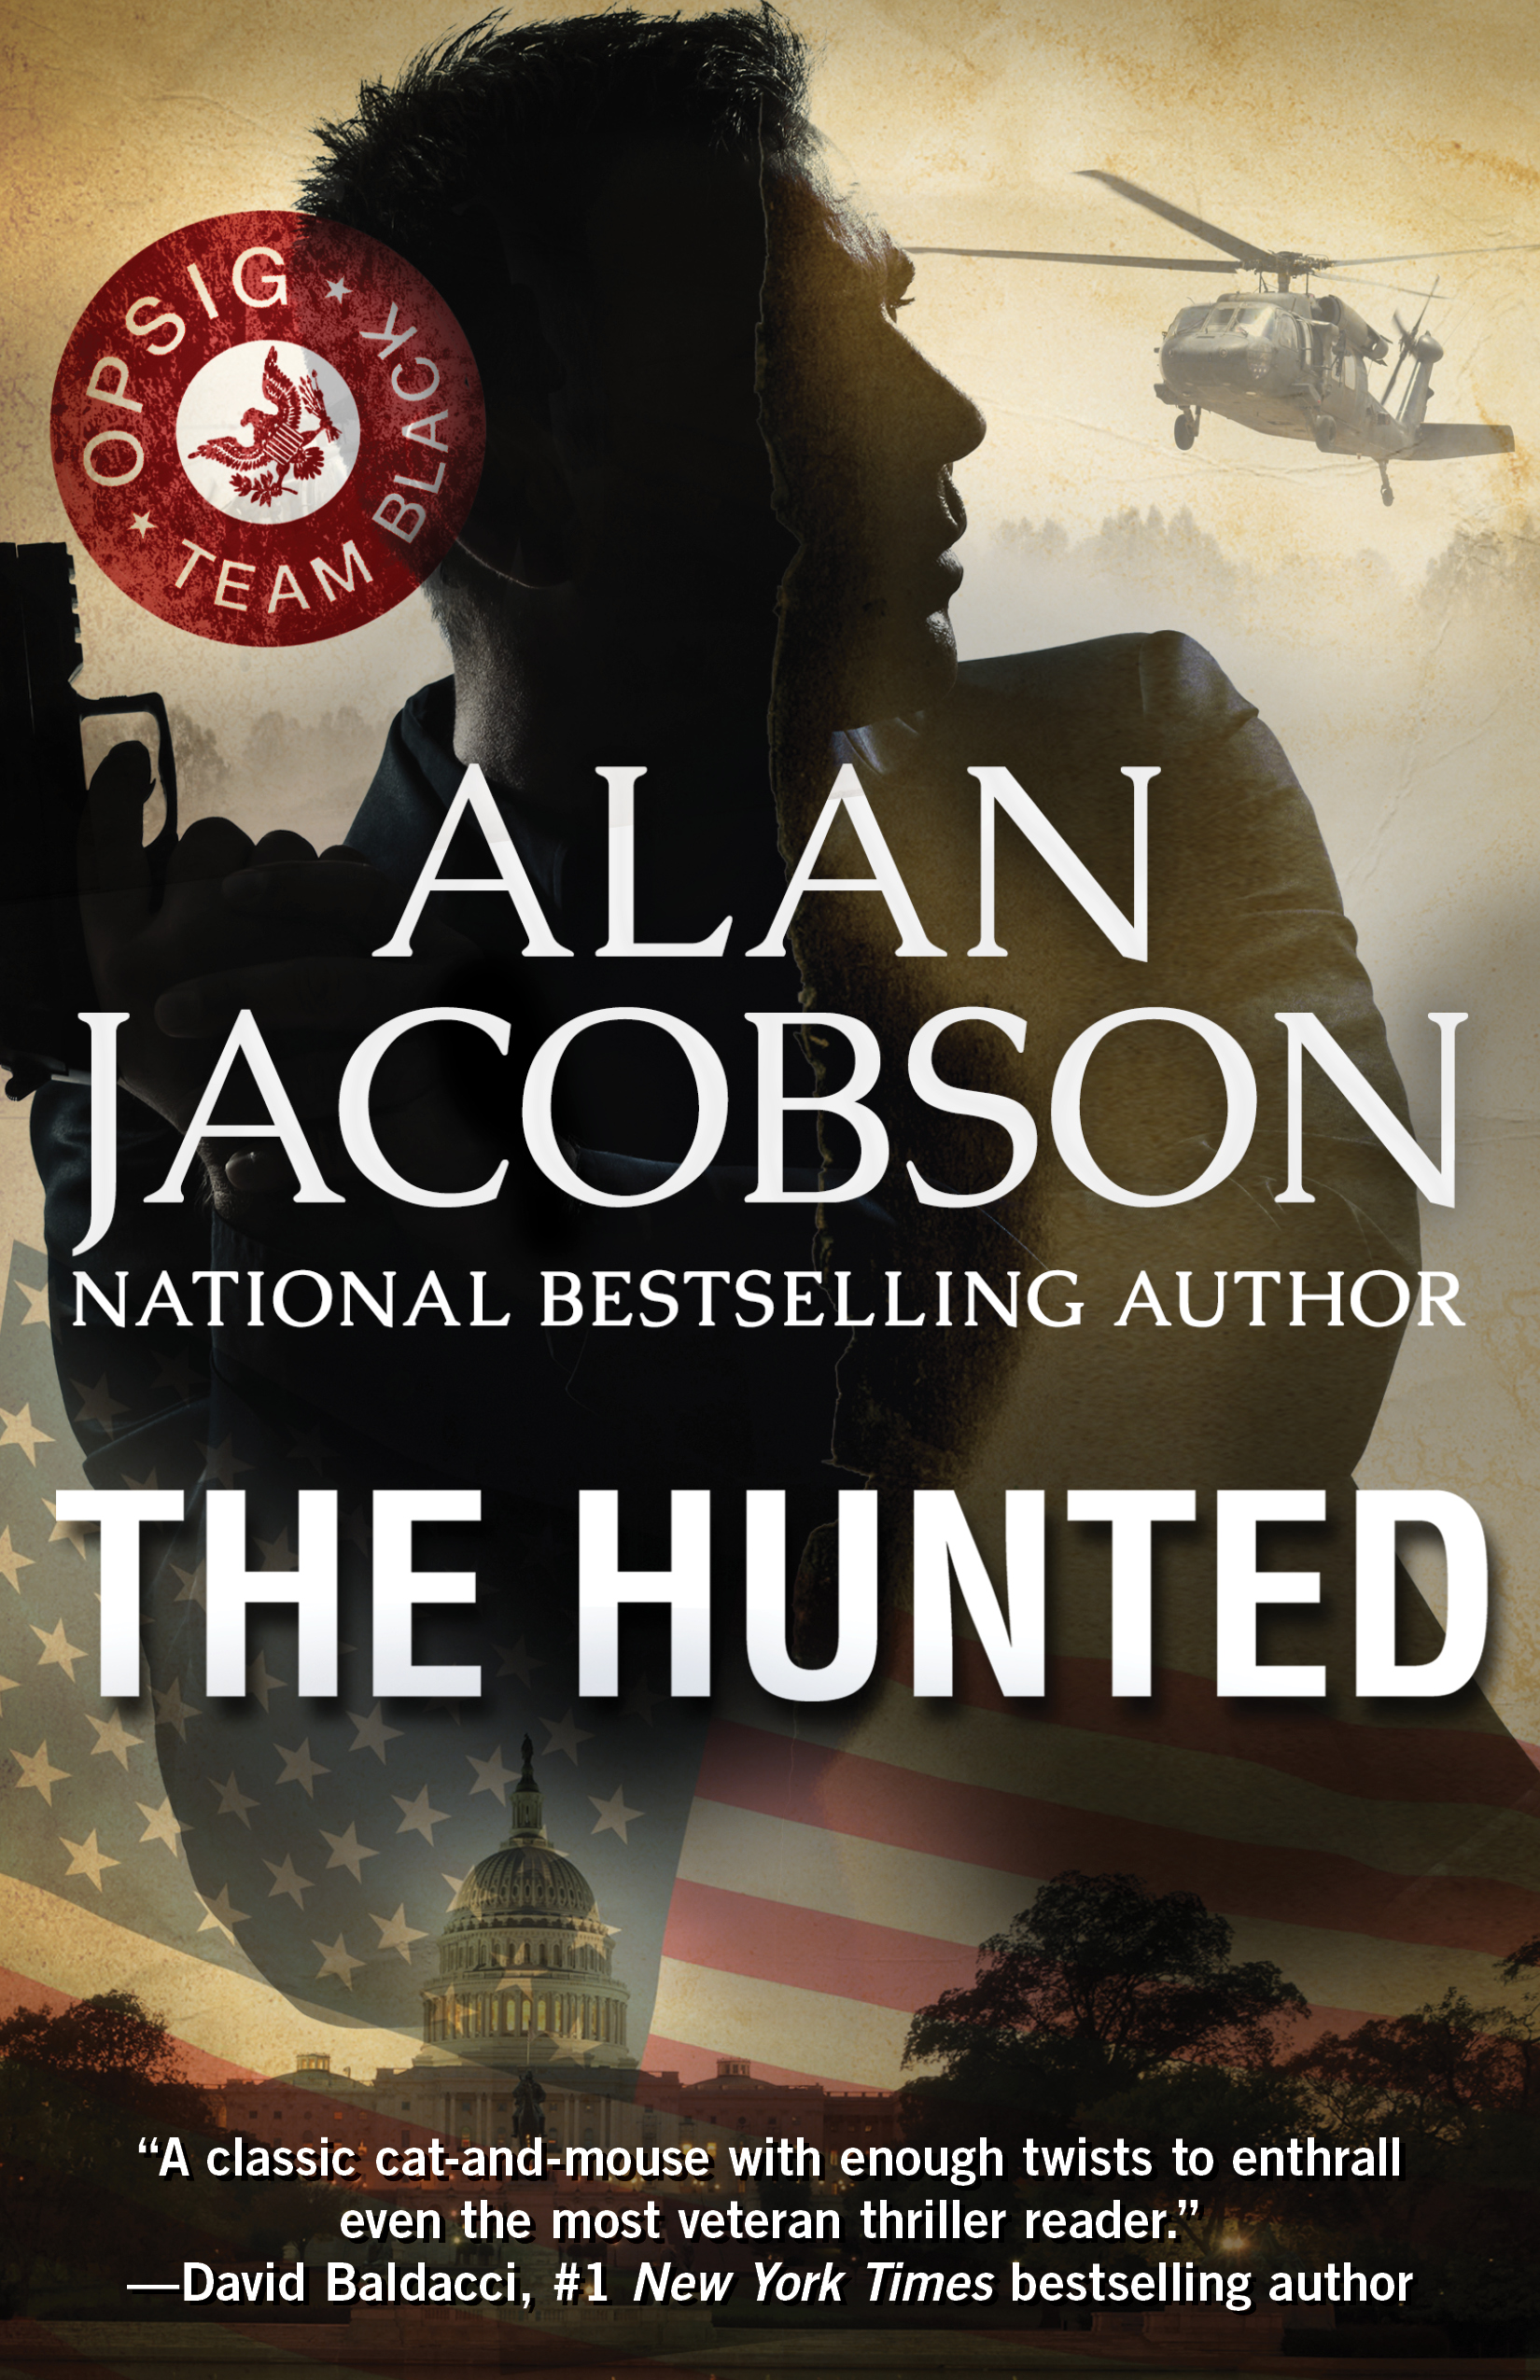 The Hunted excerpt